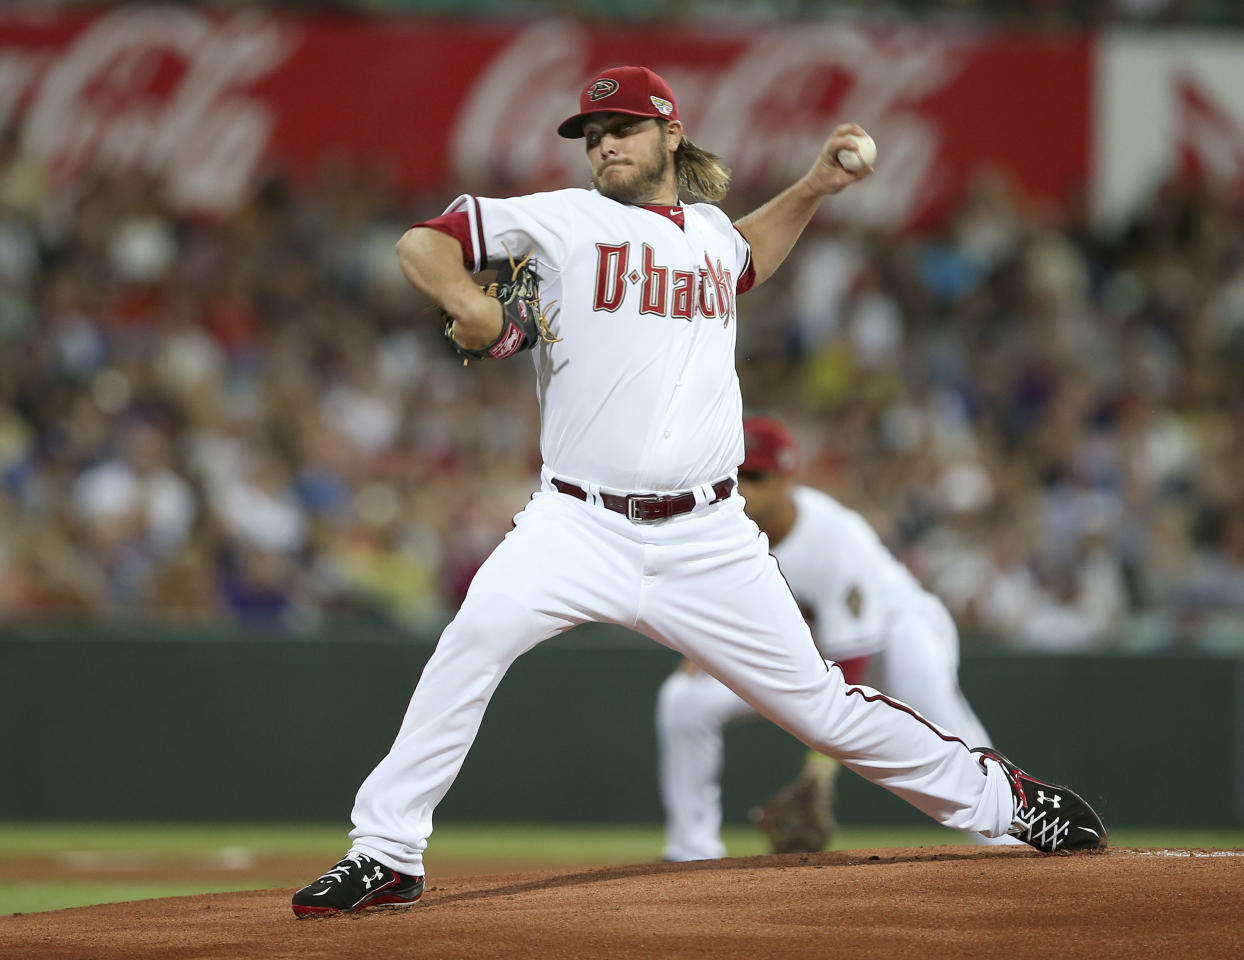 Diamondbacks' Wade Miley throws the first pitch from the opening game of the 2014 Major League Baseball season between the Los Angeles Dodgers and Arizona Diamondbacks at the Sydney Cricket Ground in Sydney, Australia Saturday, March 22, 2014. (AP Photo/Rick Rycroft)